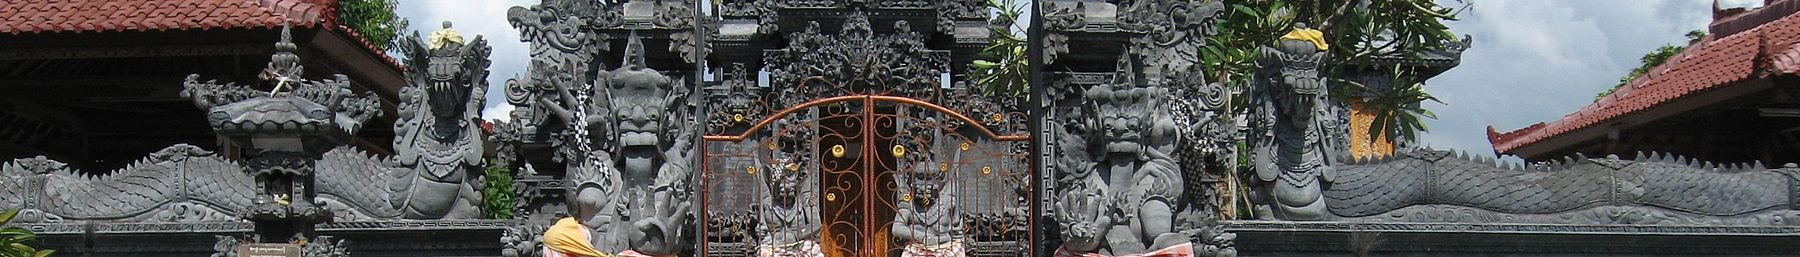 WV banner North Bali Lovina Temple.jpg